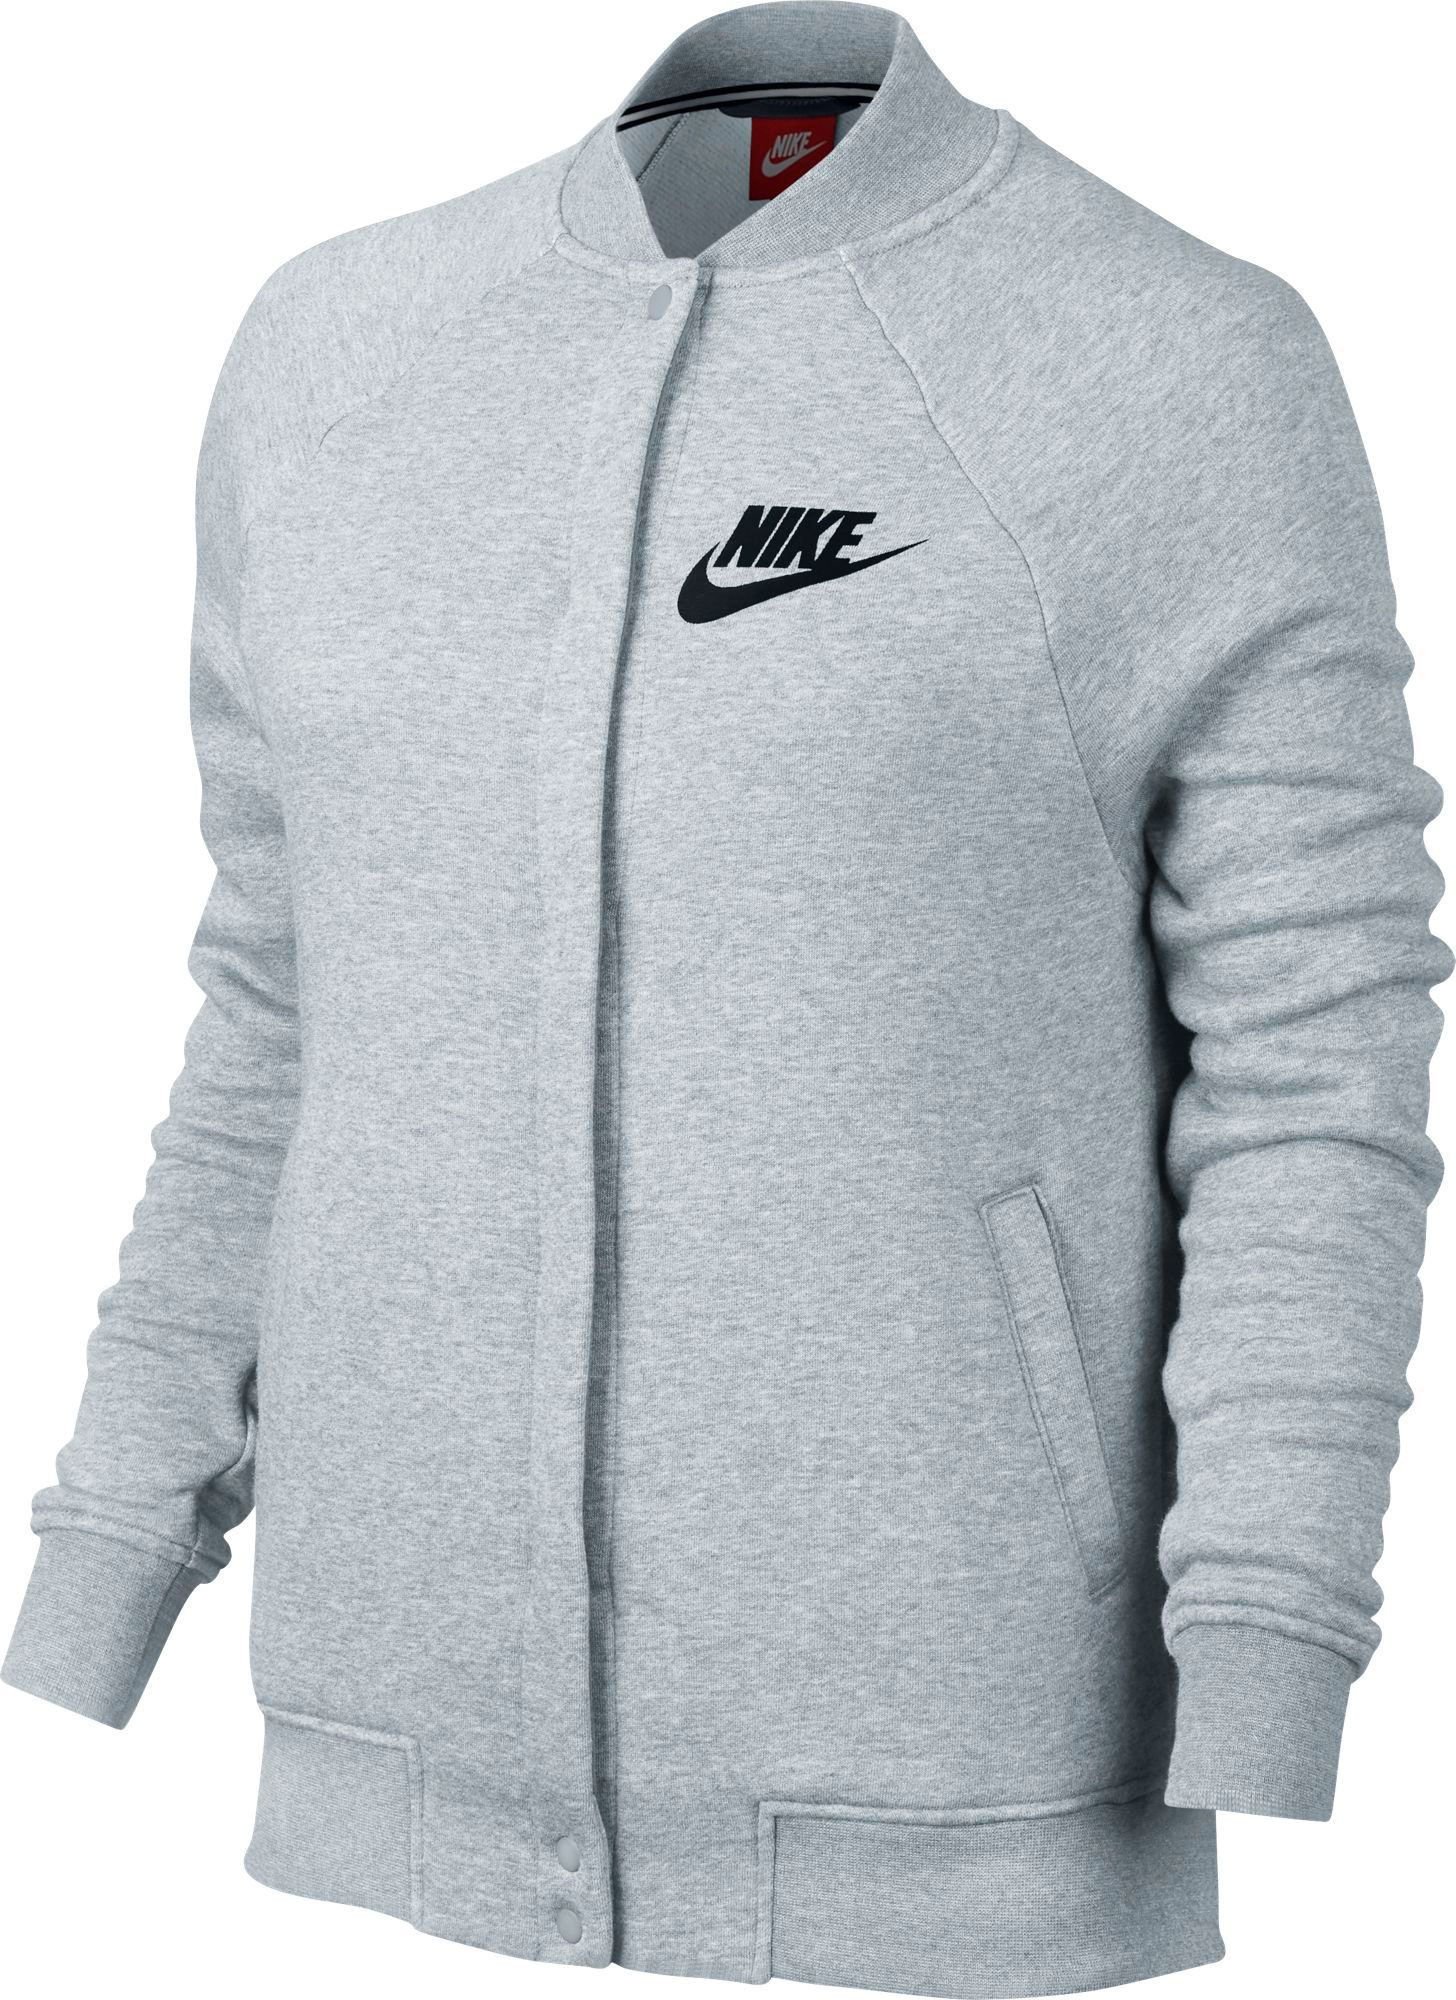 Nike Women's Sportswear Rally Varsity Fleece Jacket | DICK'S ...